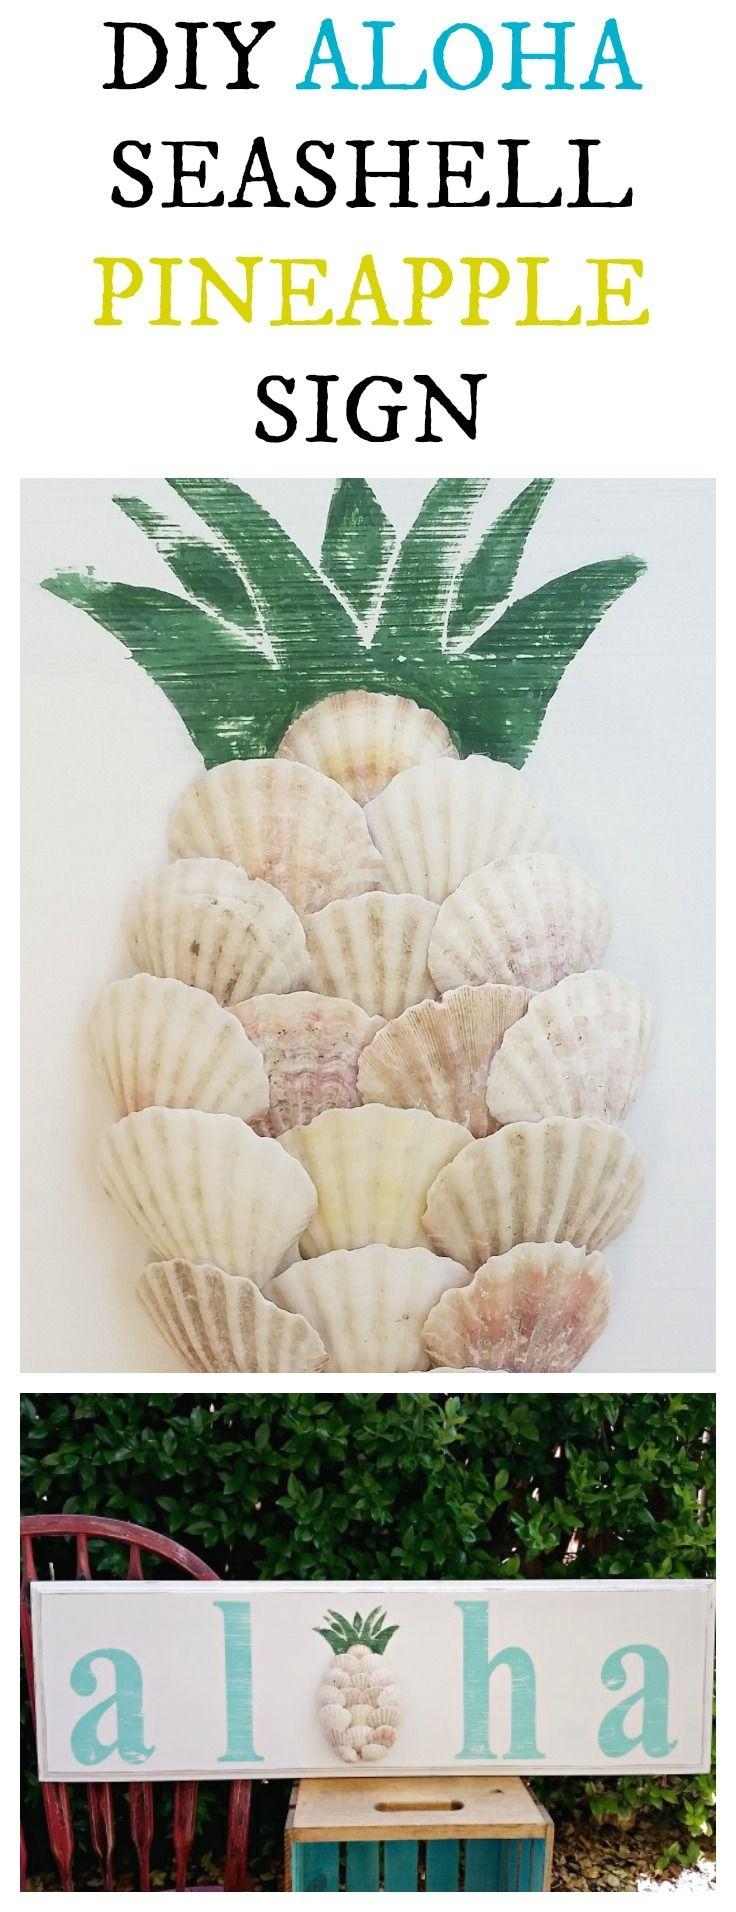 Best 25+ Shell Art Ideas On Pinterest | Shell Crafts, Seashell Art Inside Wall Art With Seashells (Image 7 of 20)